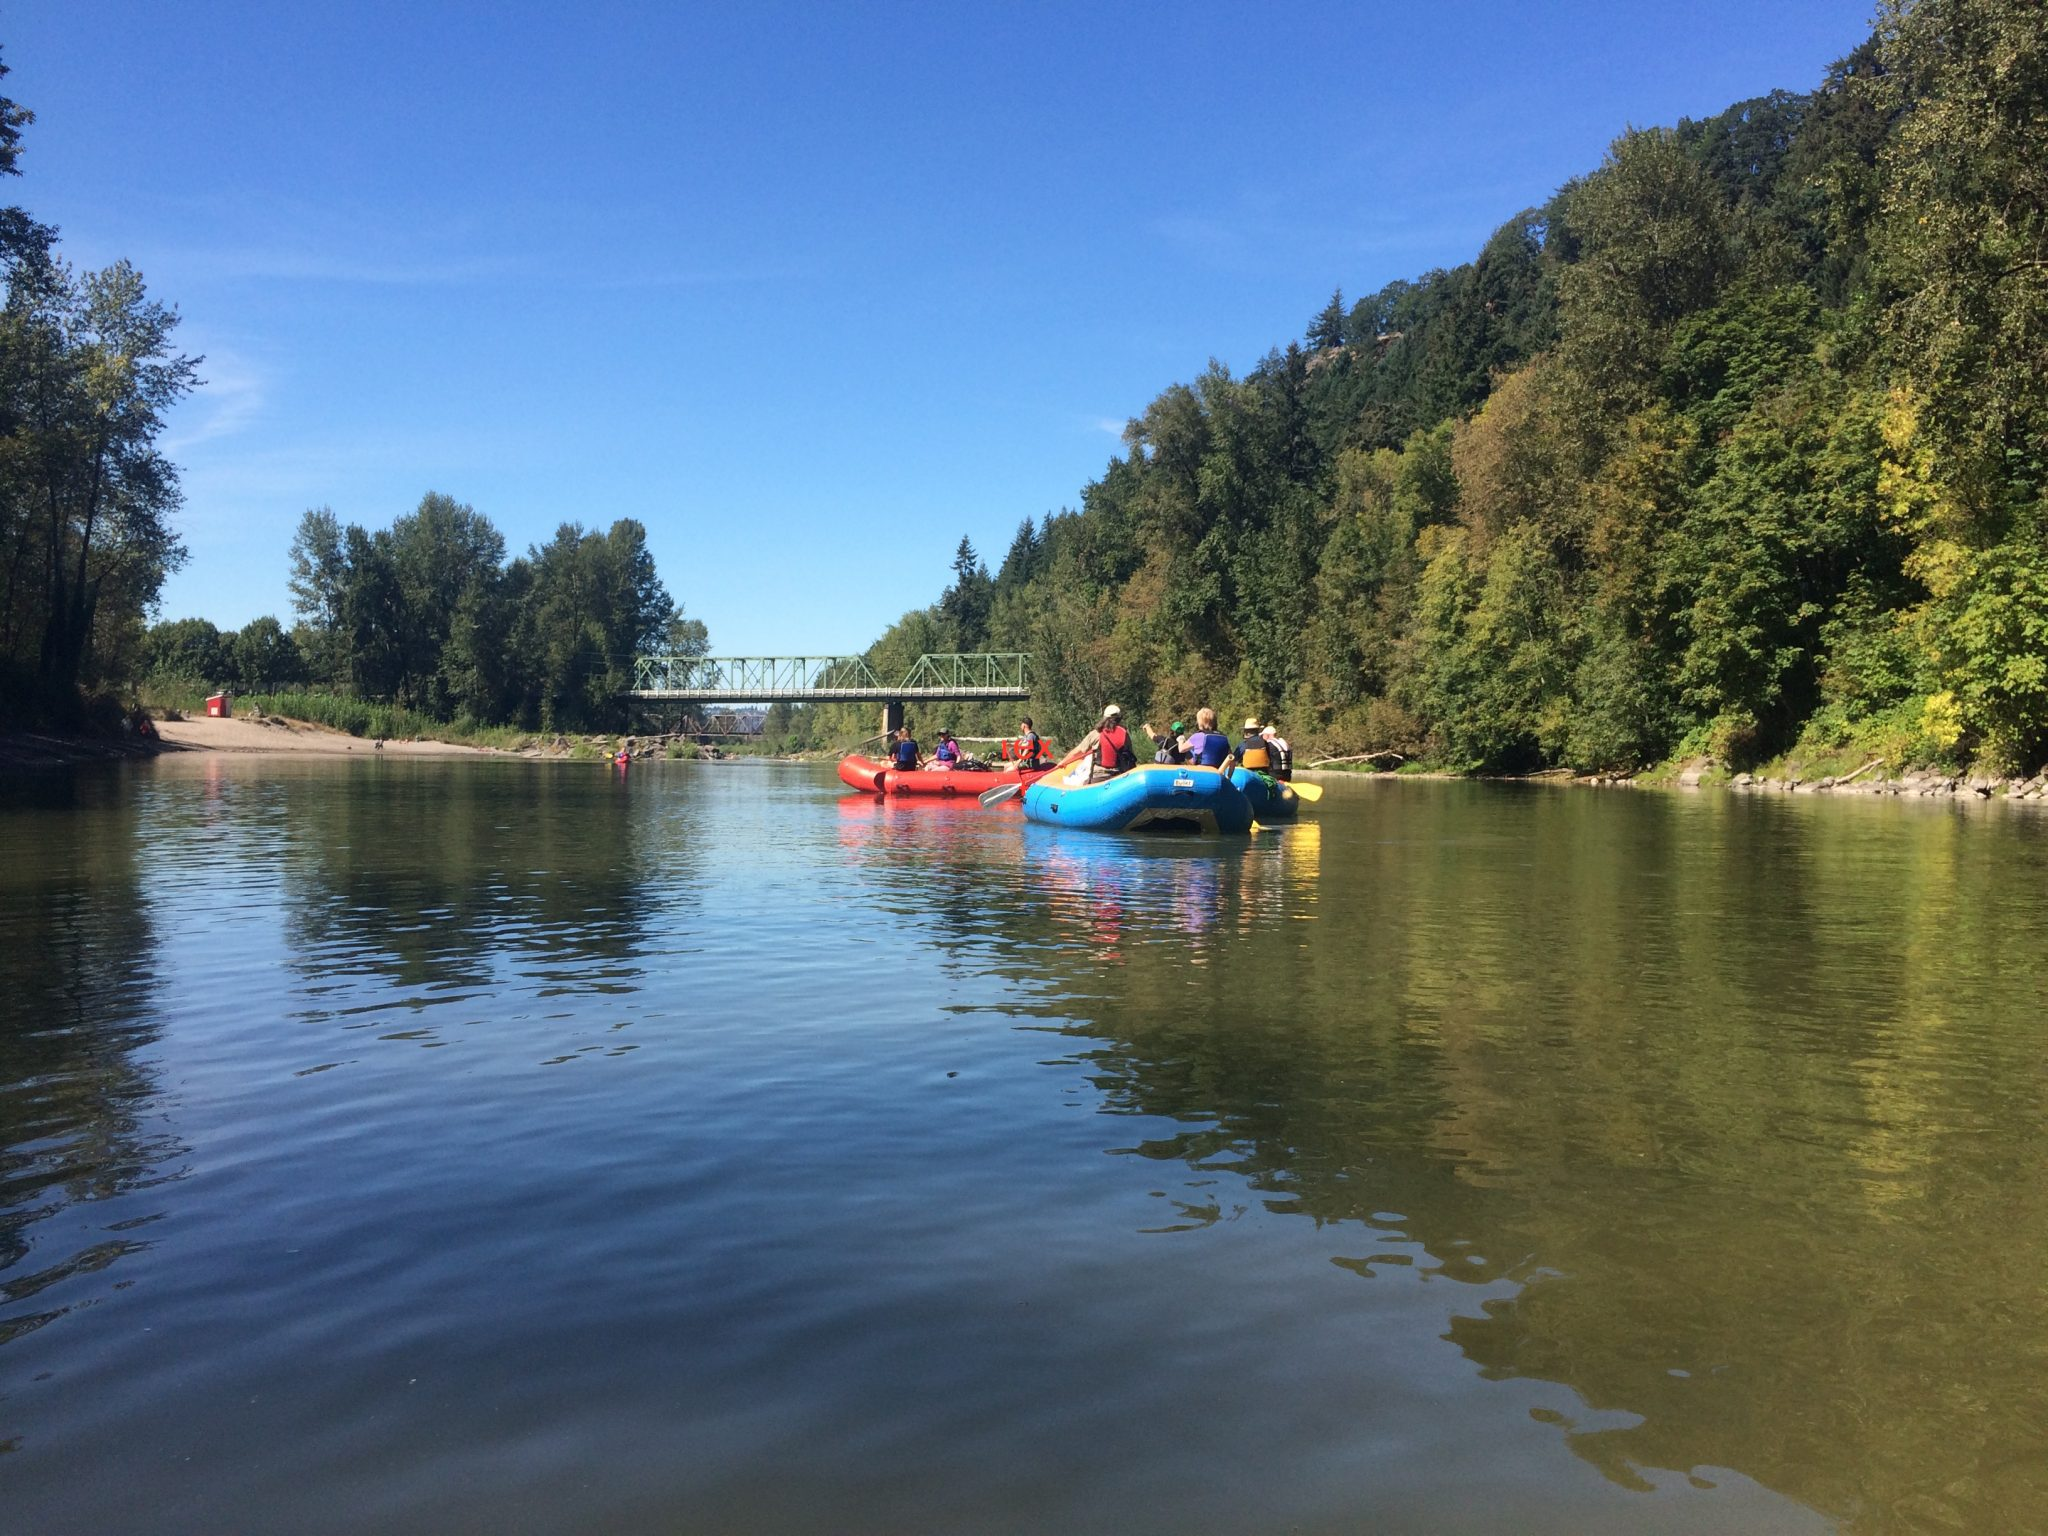 Rafts on the Sandy River